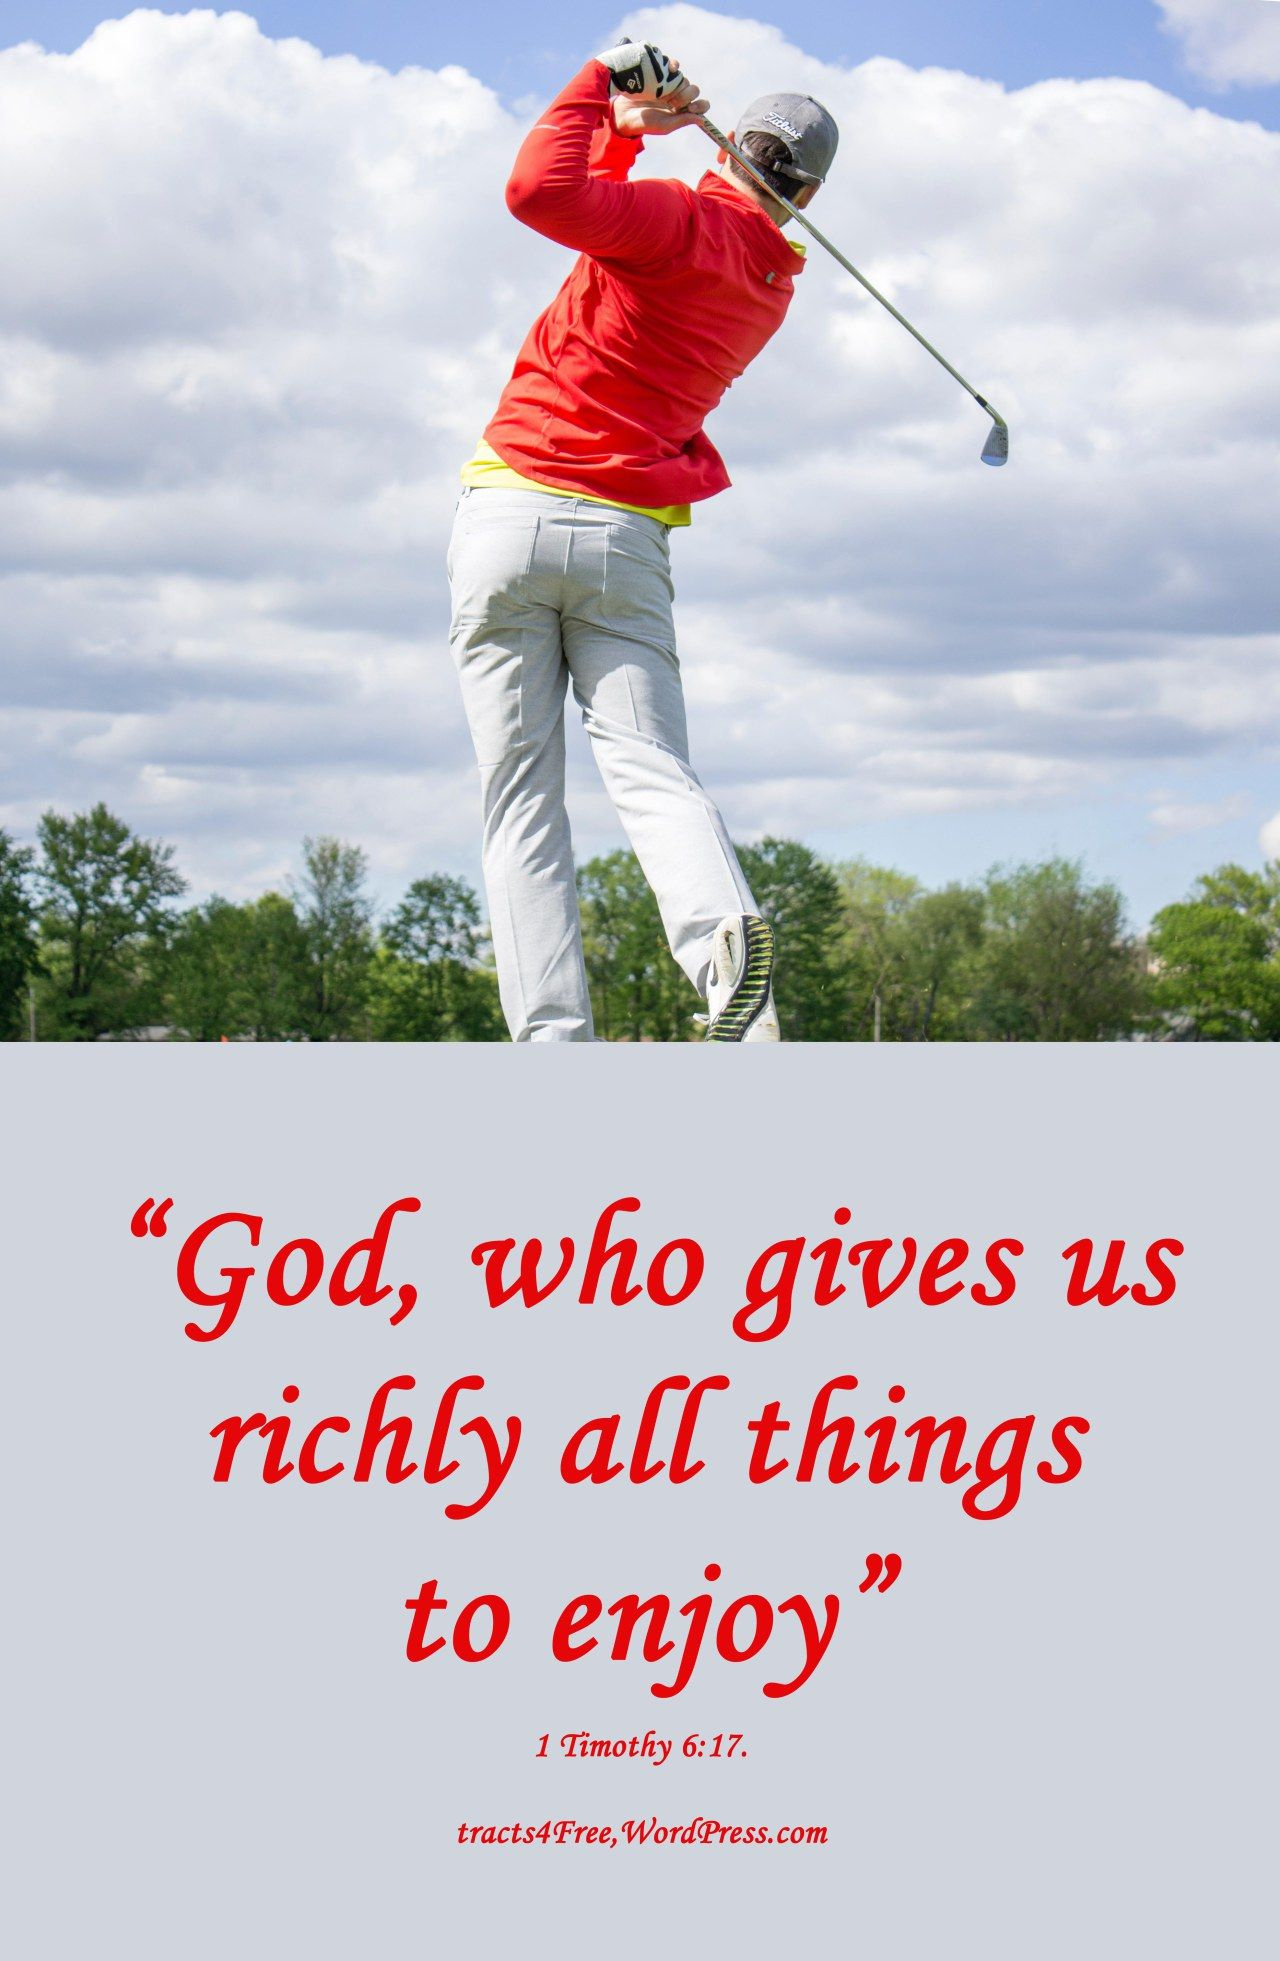 Christian Sports Posters 1 | Christian Posters | Pinterest - Free Printable Sports Posters